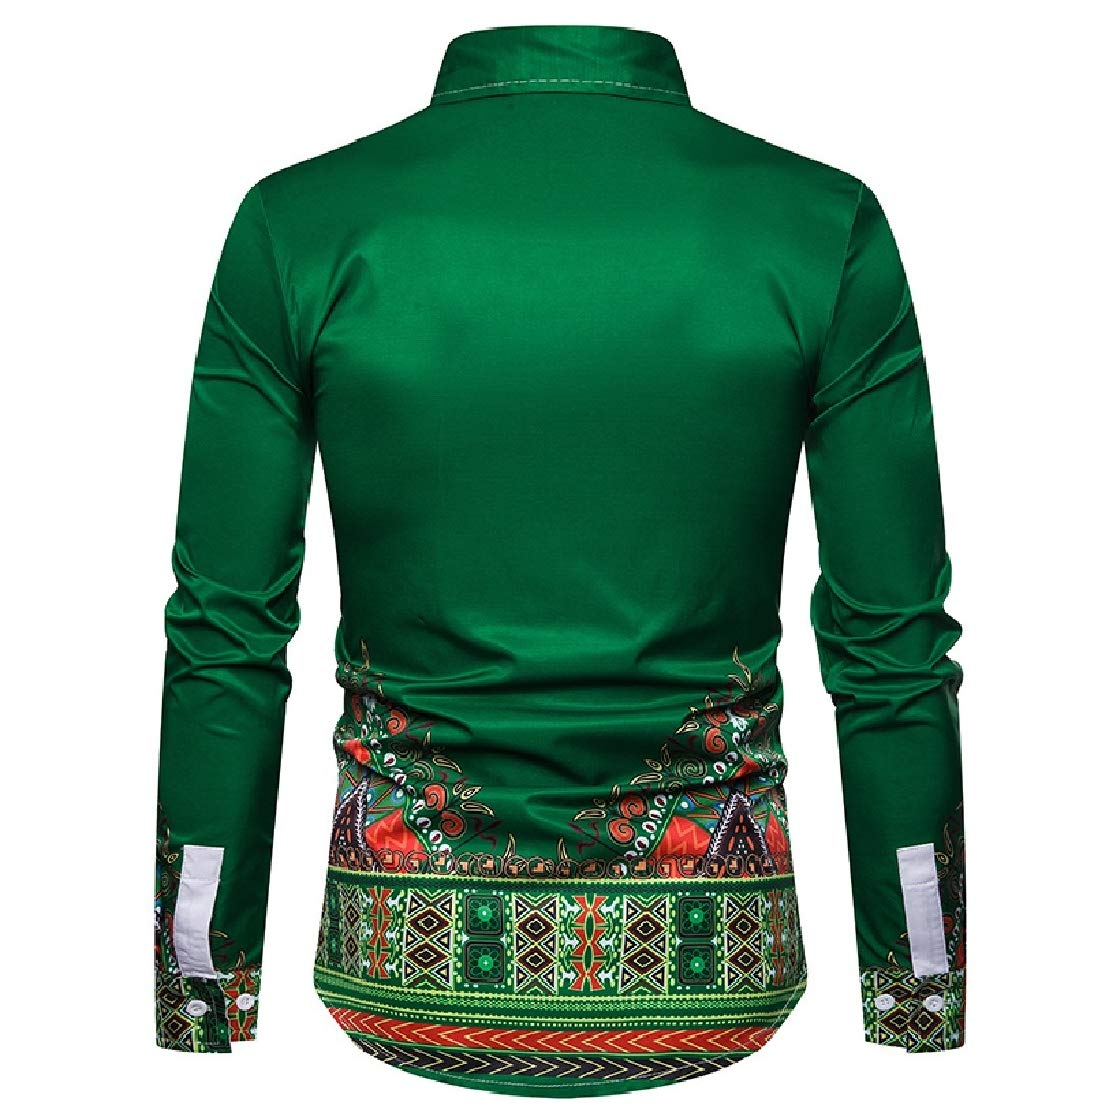 YUNY Mens Regular-Fit Long Sleeve Heart Printing Peaked Collar 3D Shirts Green S